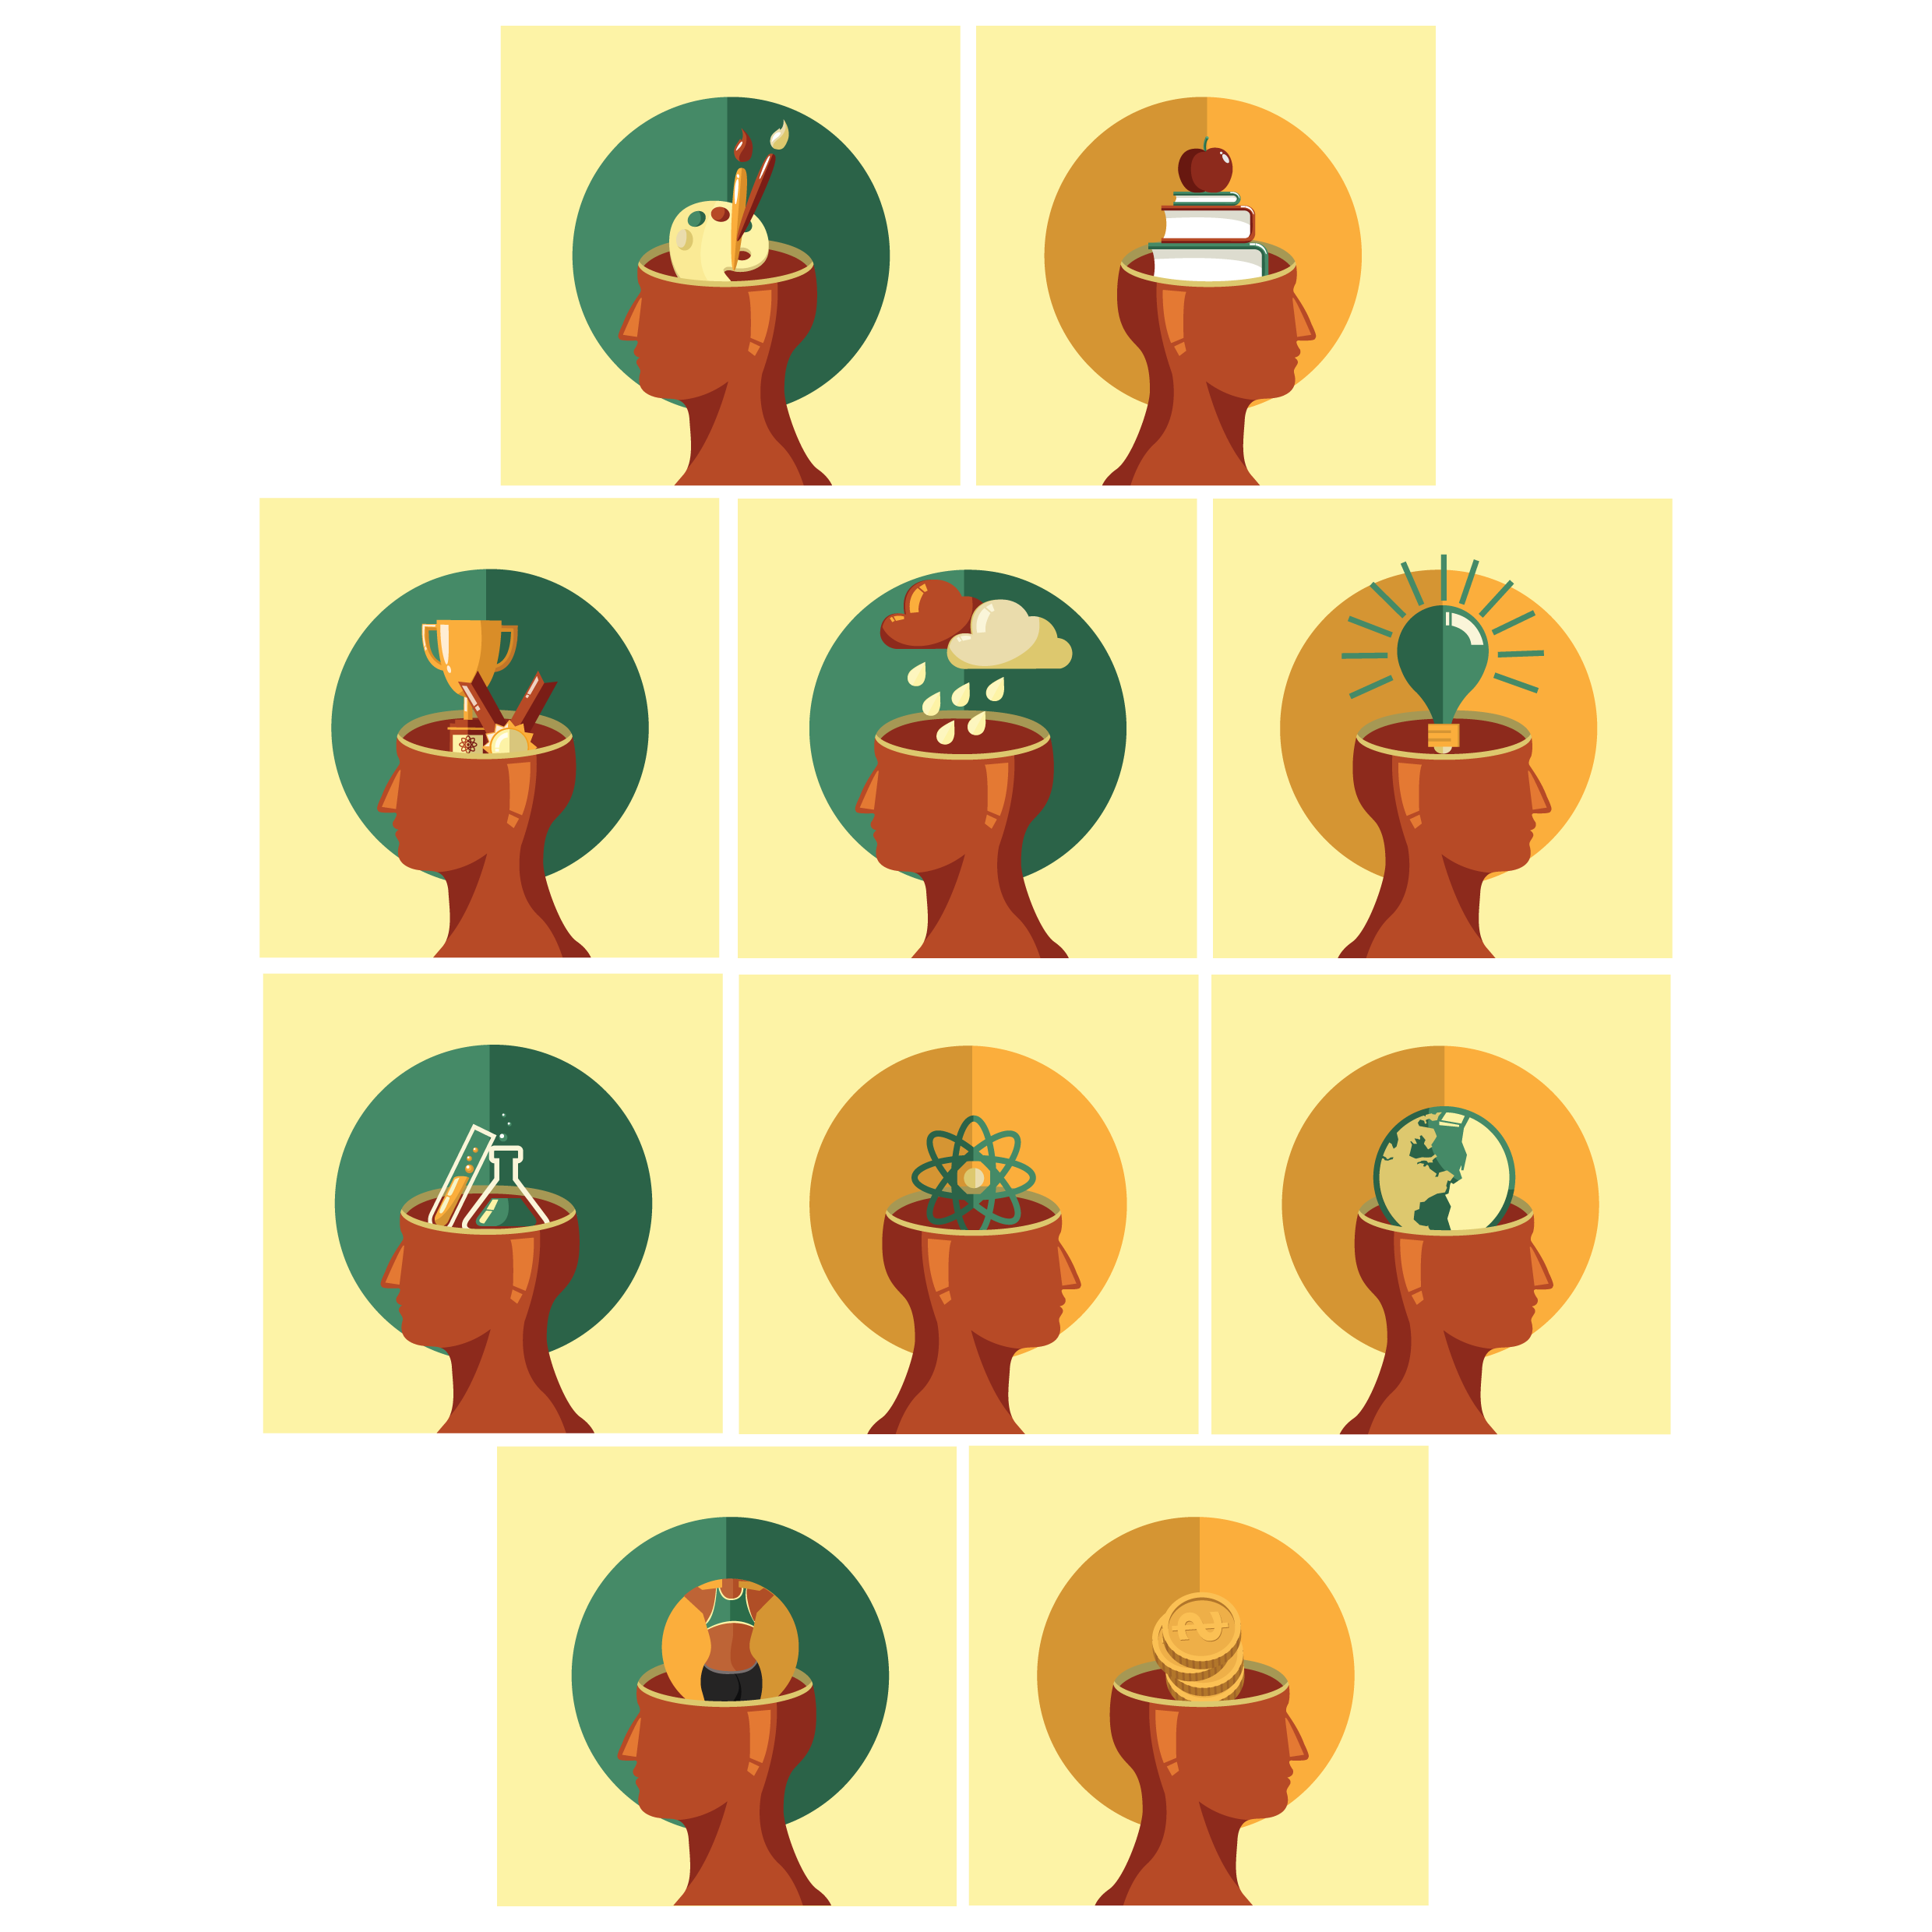 Test clipart assessment. Lessons learned from an